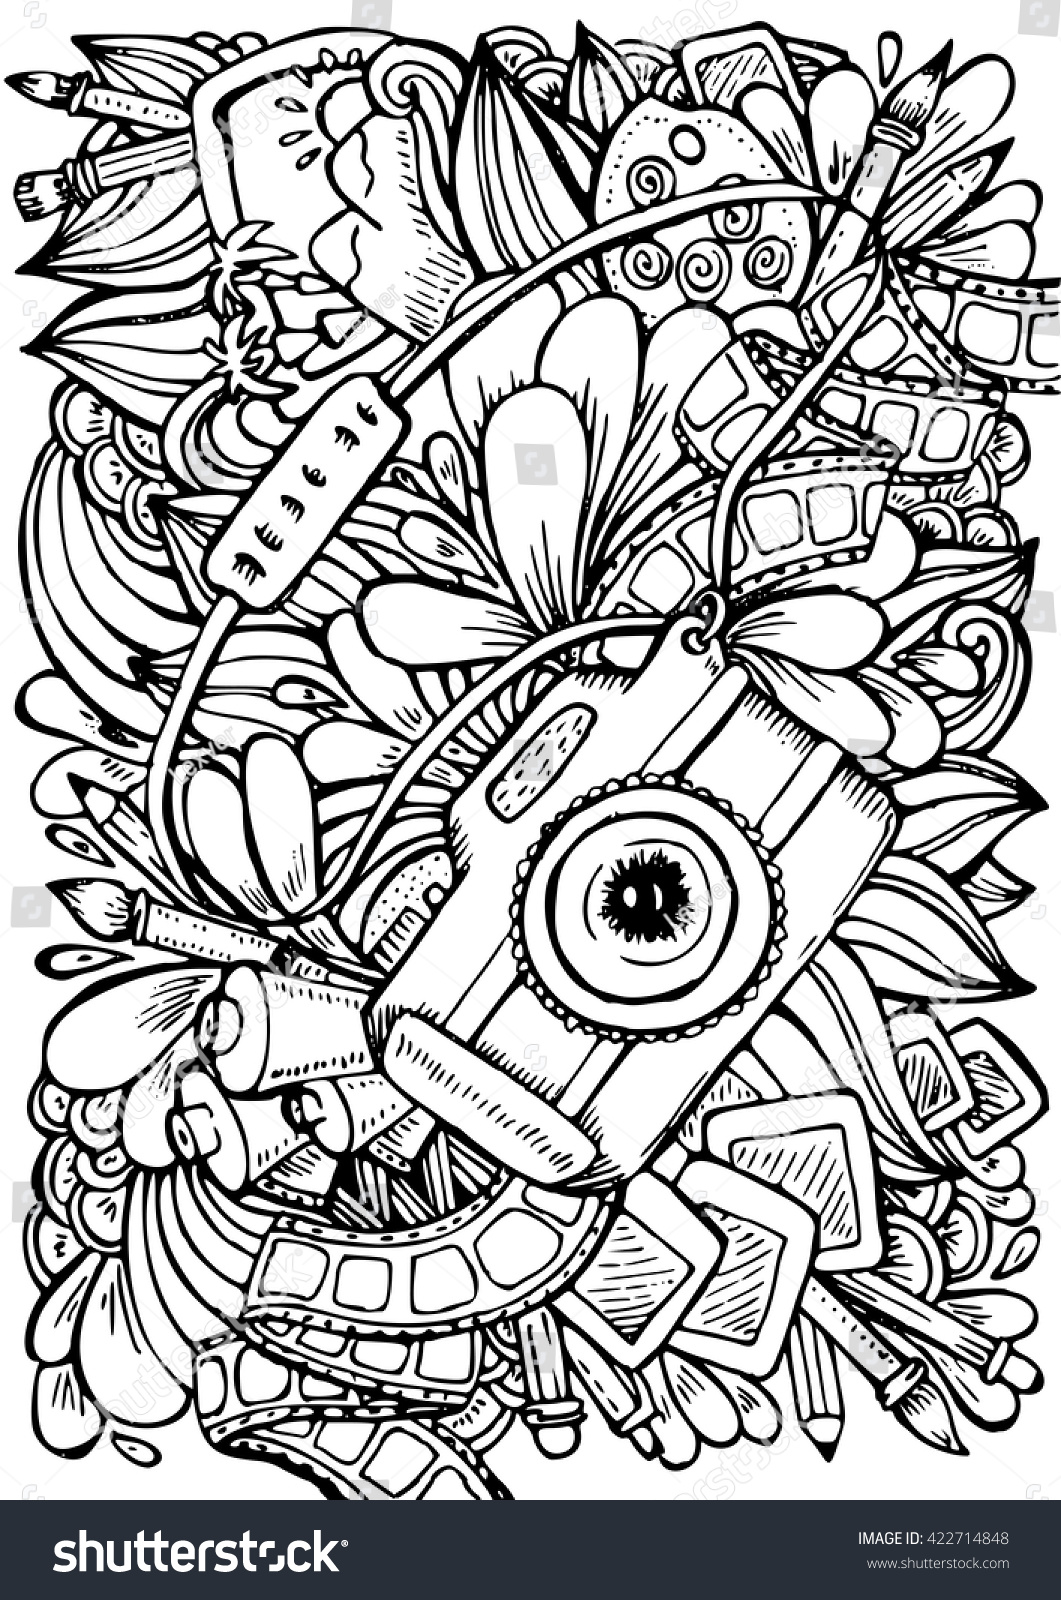 Uncategorized Camera Coloring Page vector hand drawn pattern anti stress stock 422714848 coloring book page for adult photo camera